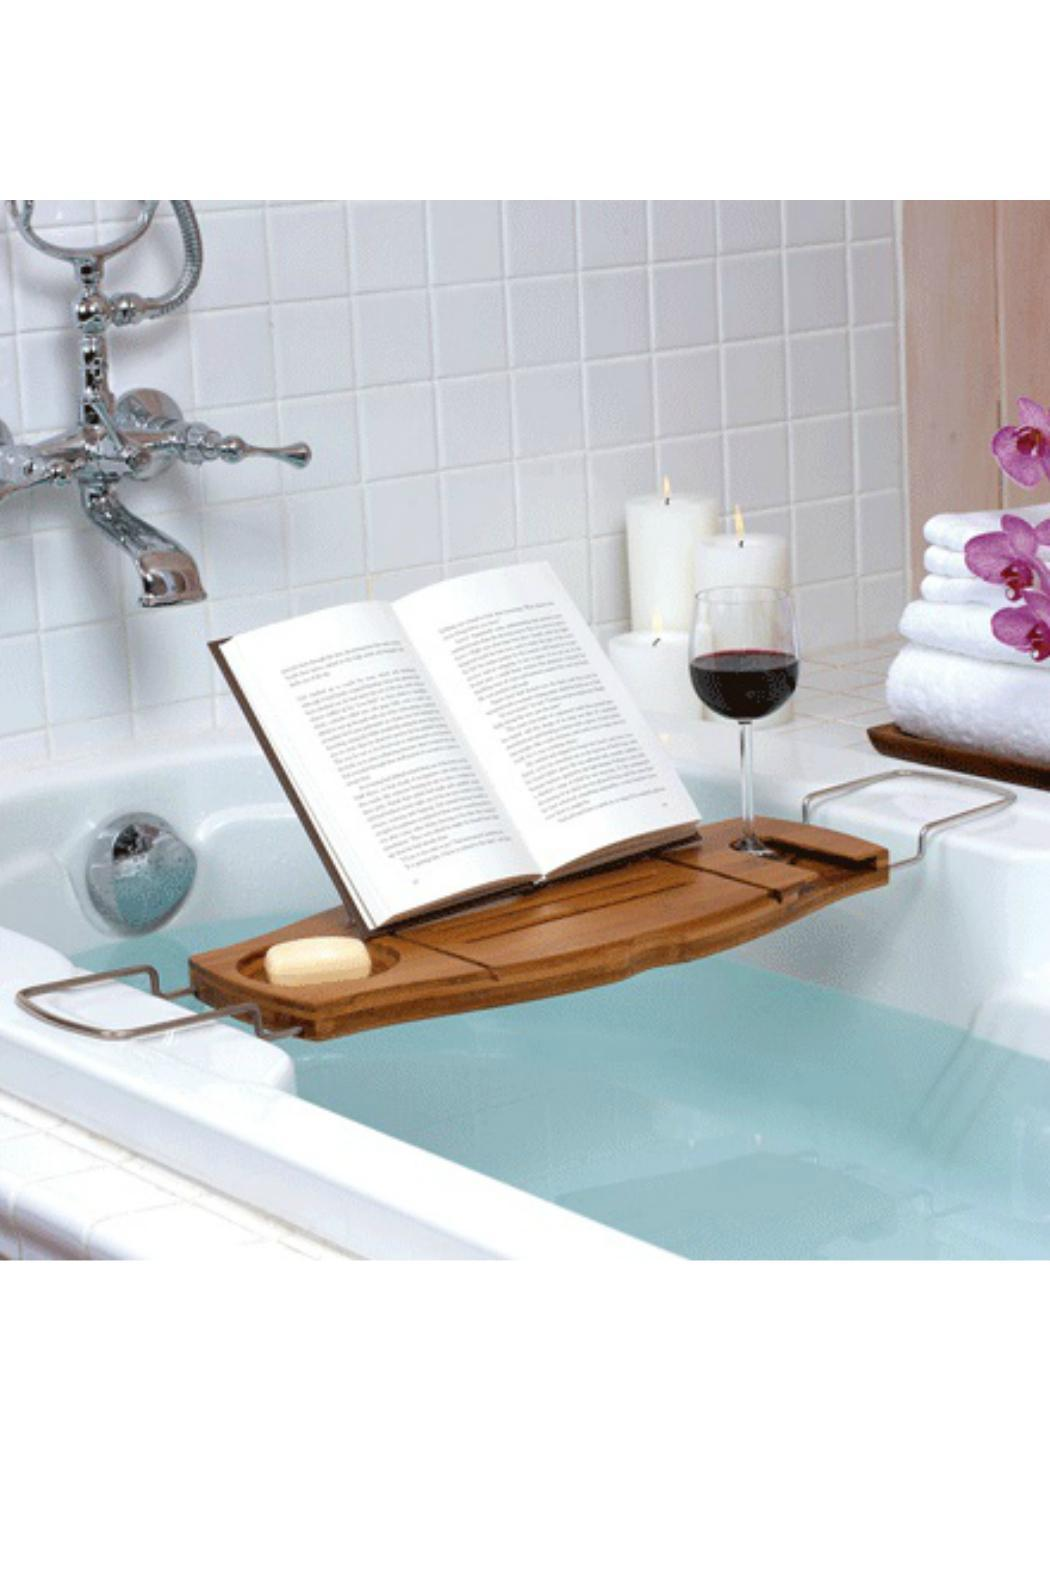 Umbra Aquala Bathtub Caddy from Omaha by The Afternoon — Shoptiques